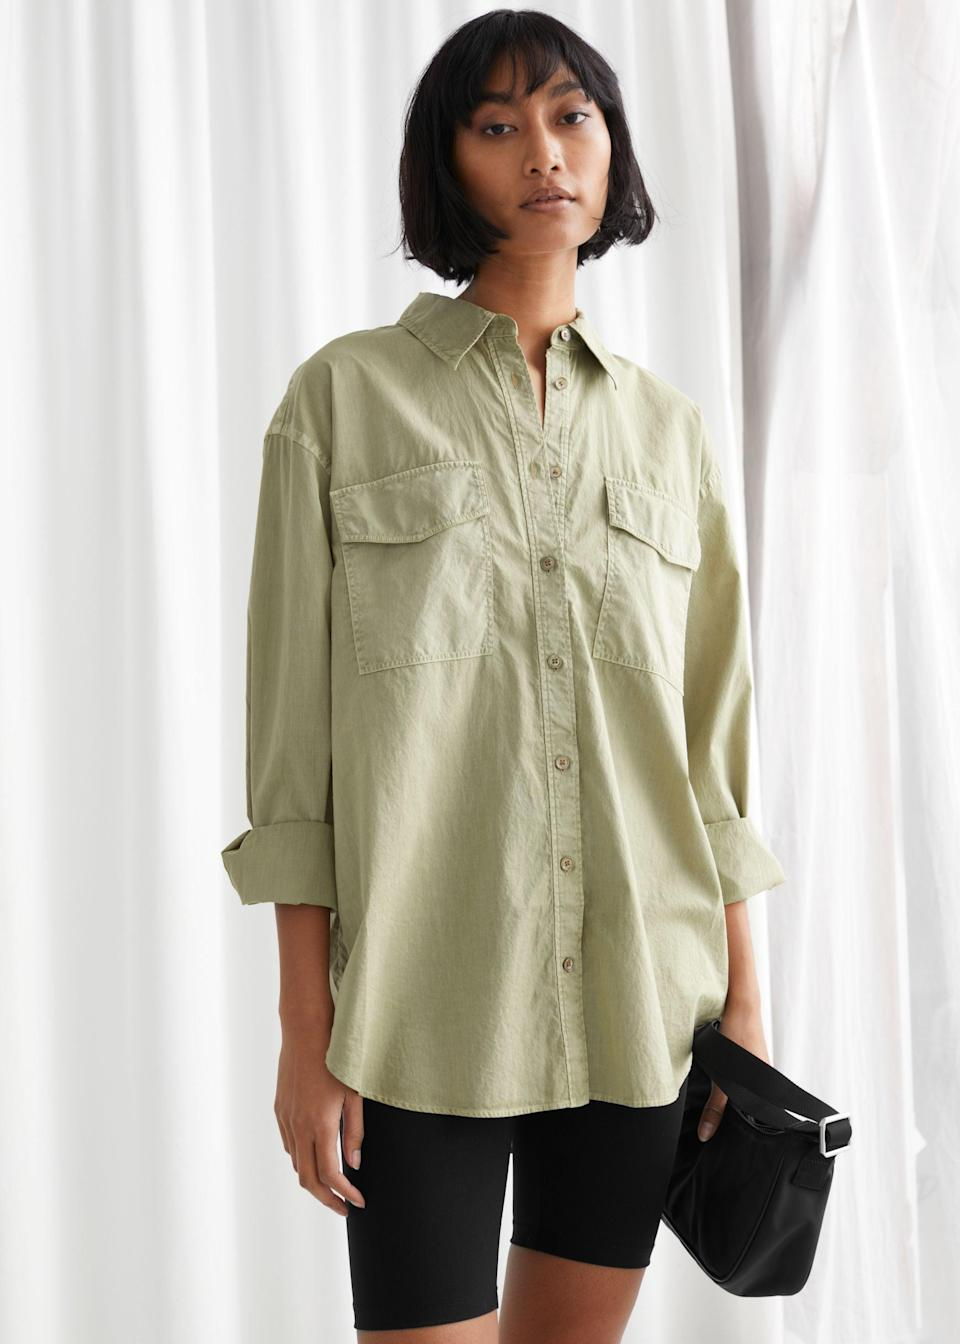 """<br> <br> <strong>& Other Stories</strong> Oversized Button Up Shirt, $, available at <a href=""""https://go.skimresources.com/?id=30283X879131&url=https%3A%2F%2Fwww.stories.com%2Fen_usd%2Fclothing%2Fblouses-shirts%2Fshirts%2Fproduct.oversized-button-up-shirt-green.0783962007.html"""" rel=""""nofollow noopener"""" target=""""_blank"""" data-ylk=""""slk:& Other Stories"""" class=""""link rapid-noclick-resp"""">& Other Stories</a>"""